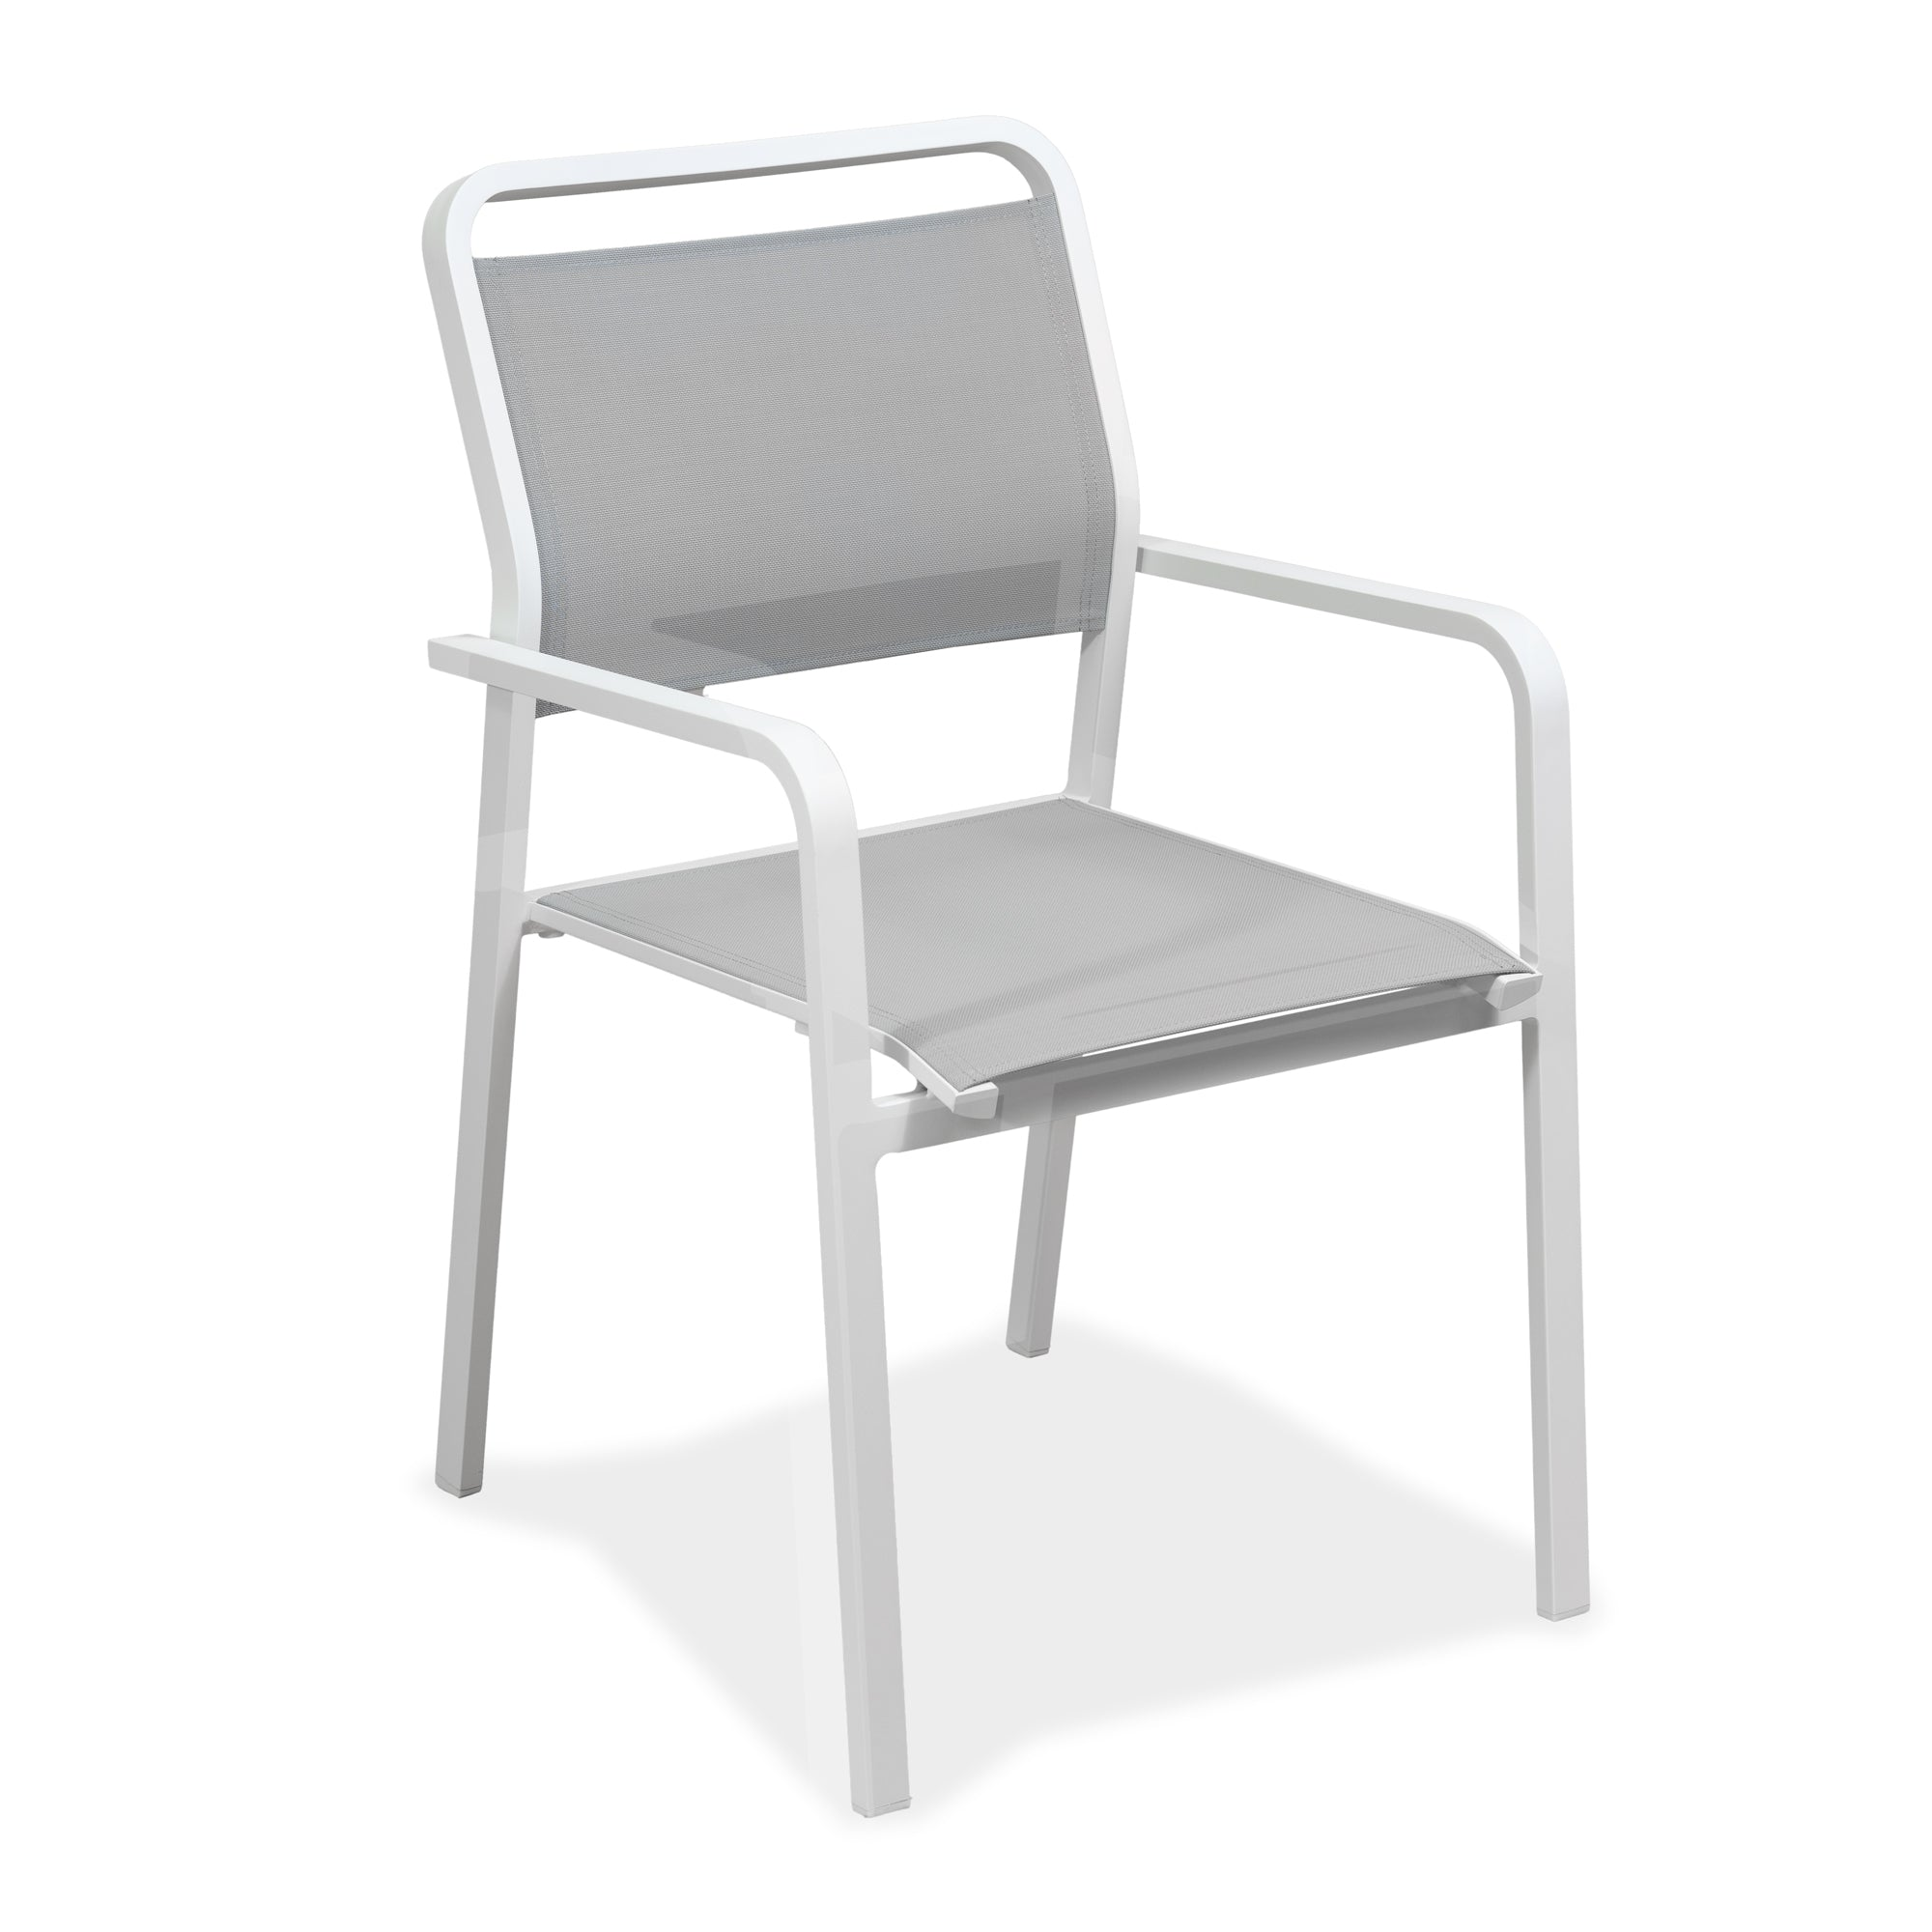 Eleve Outdoor Rounded Dining Armchair, Dining Chair - Home-Buy Interiors